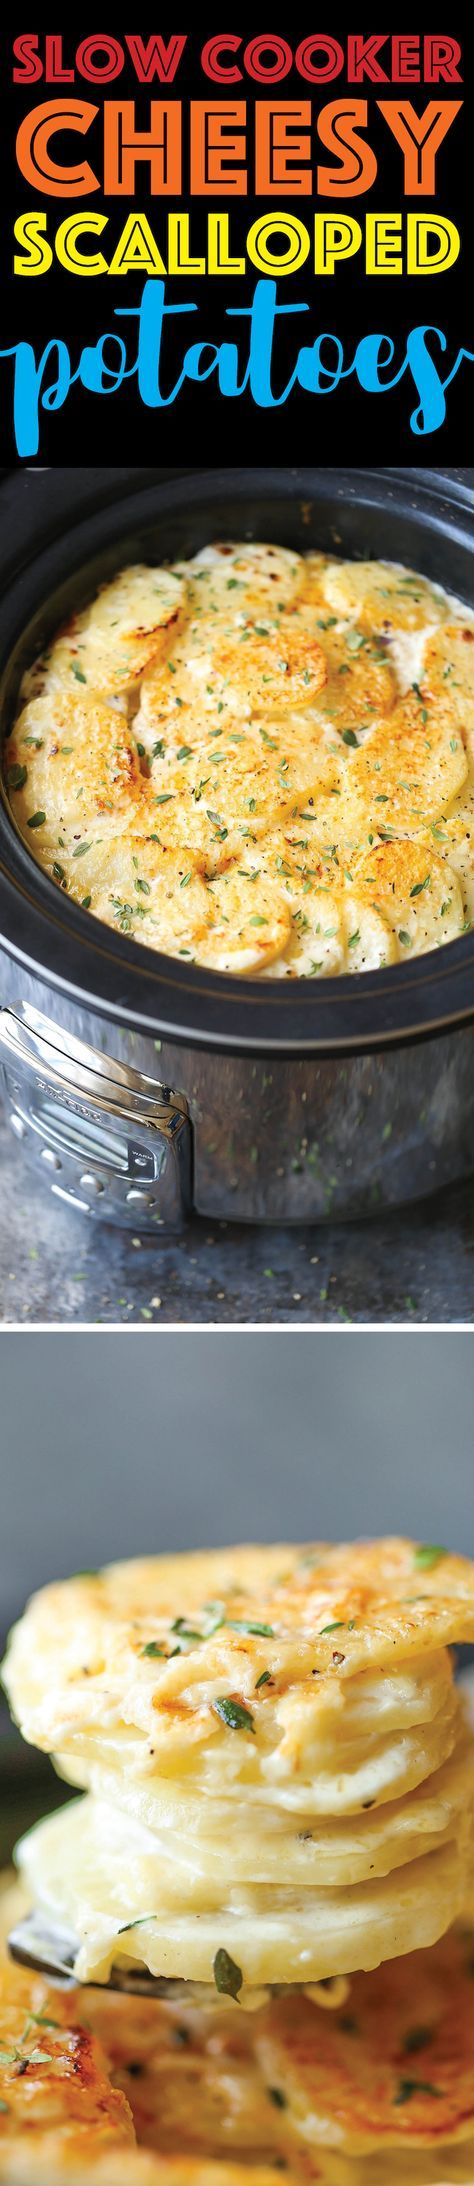 Slow Cooker Cheesy Scalloped Potatoes - This crockpot version of scalloped potatoes is so EASY, creamy, tender and cheesy! And it frees up your oven space!